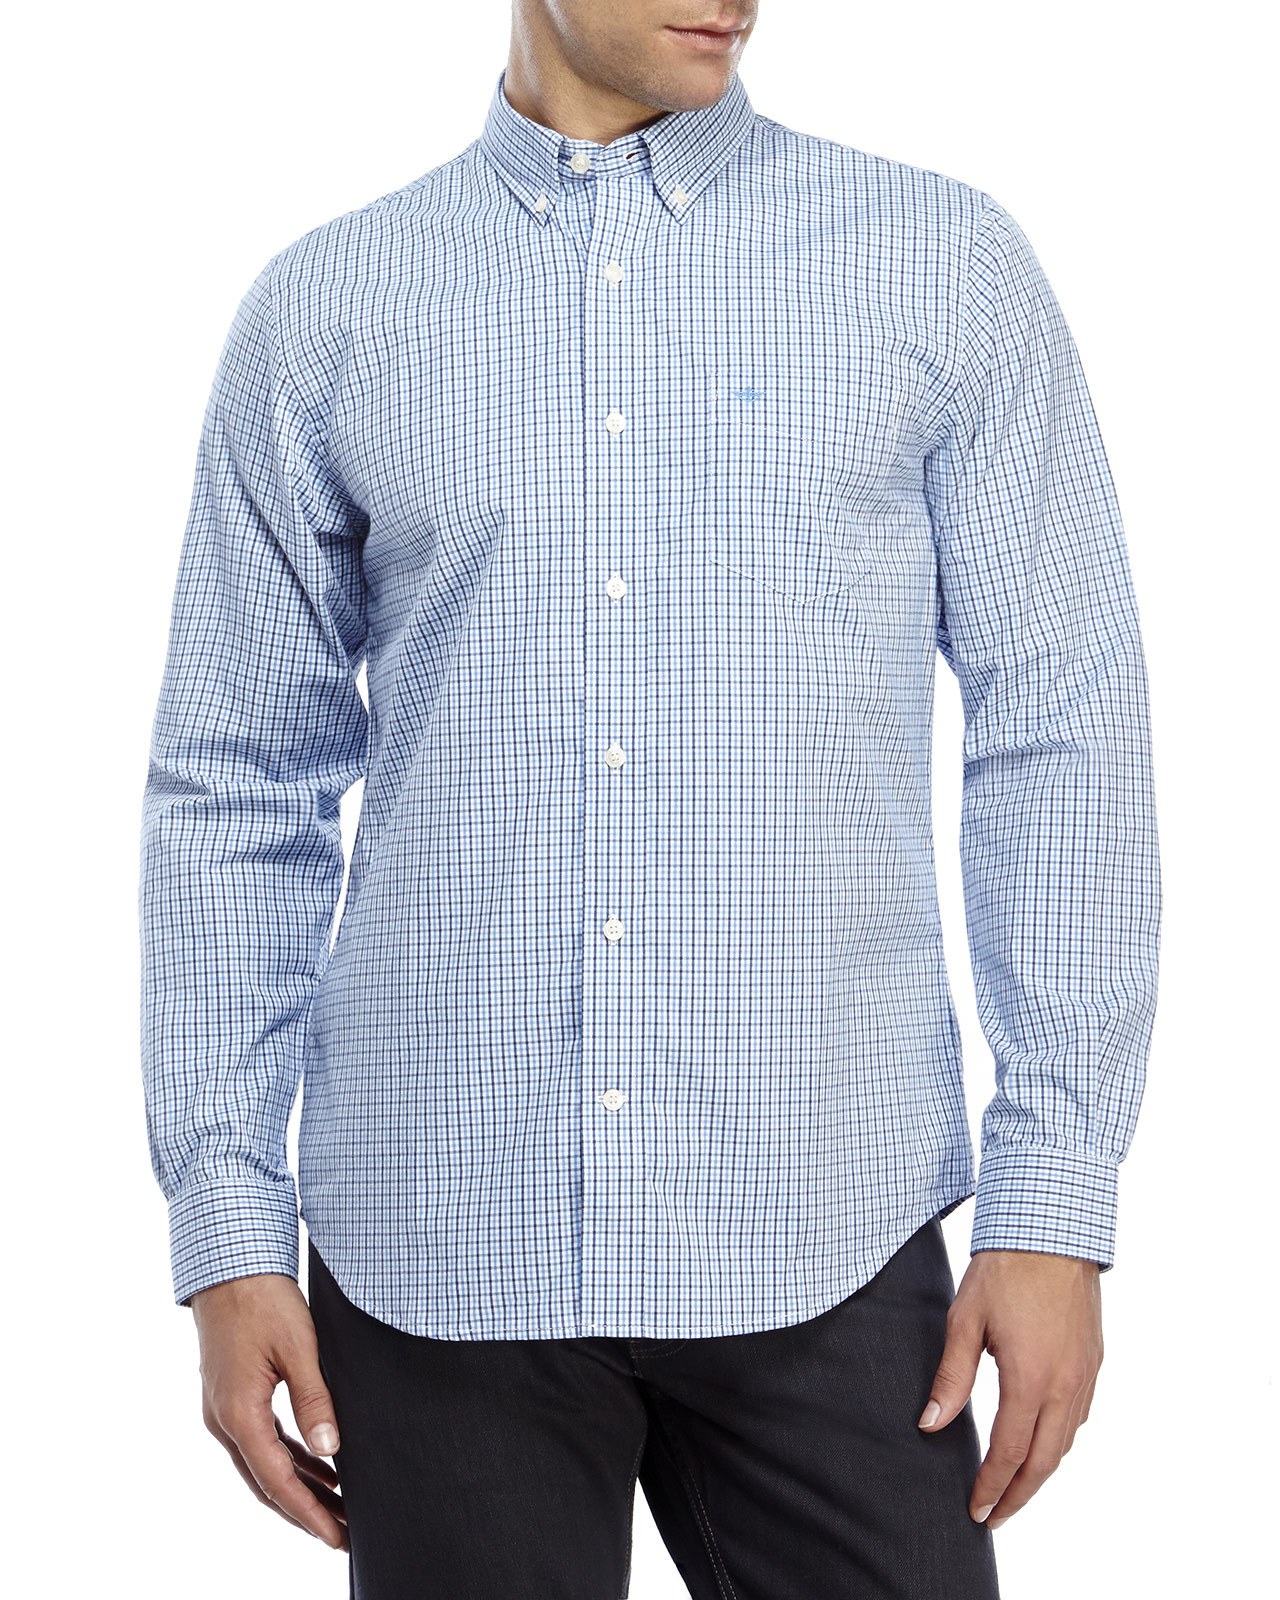 Dockers soft no wrinkle button down shirt in blue for men for Dockers wrinkle free shirts